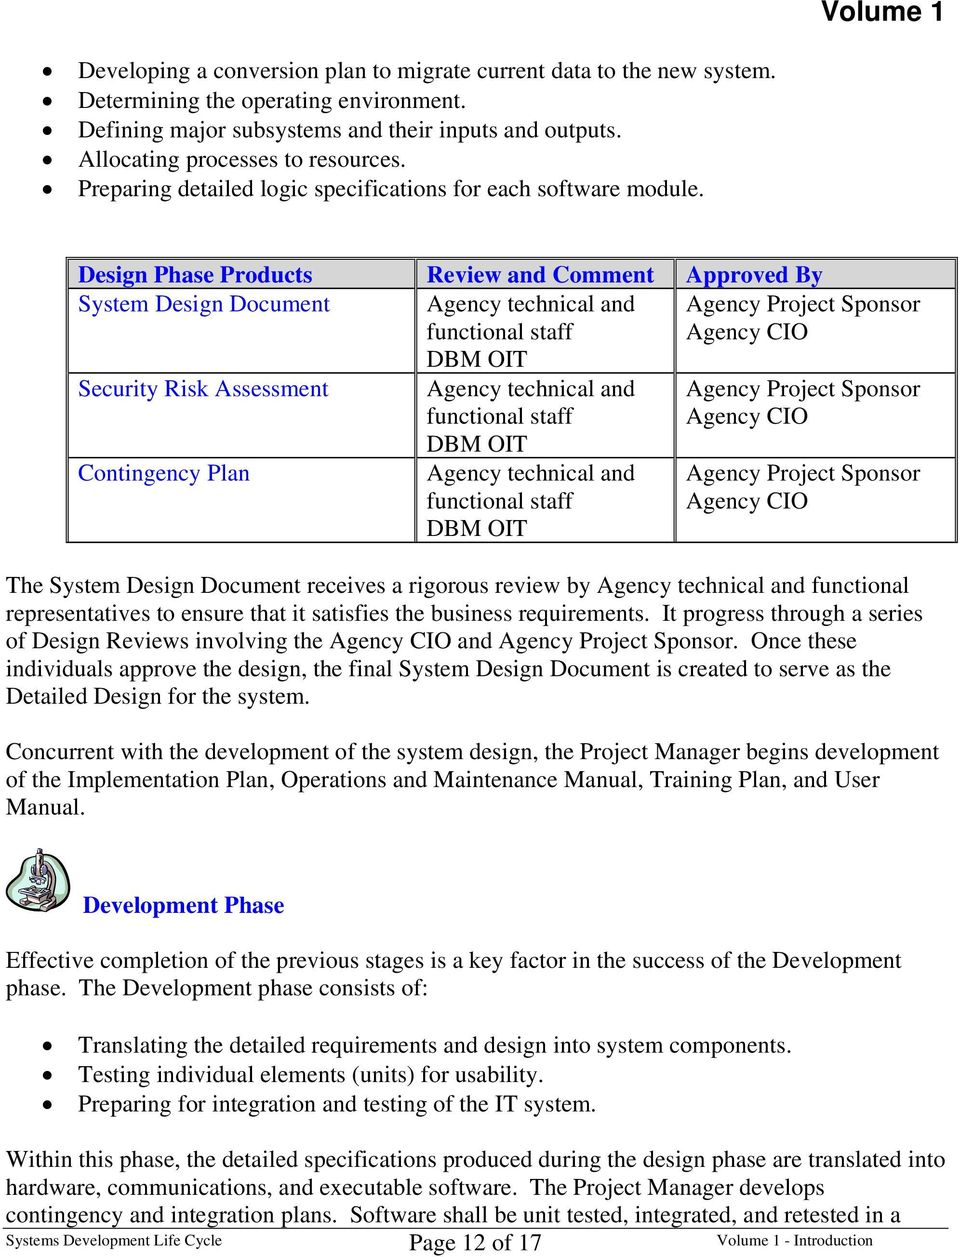 Design Phase Products Review and Comment Approved By System Design Document Security Risk Assessment Contingency Plan The System Design Document receives a rigorous review by functional